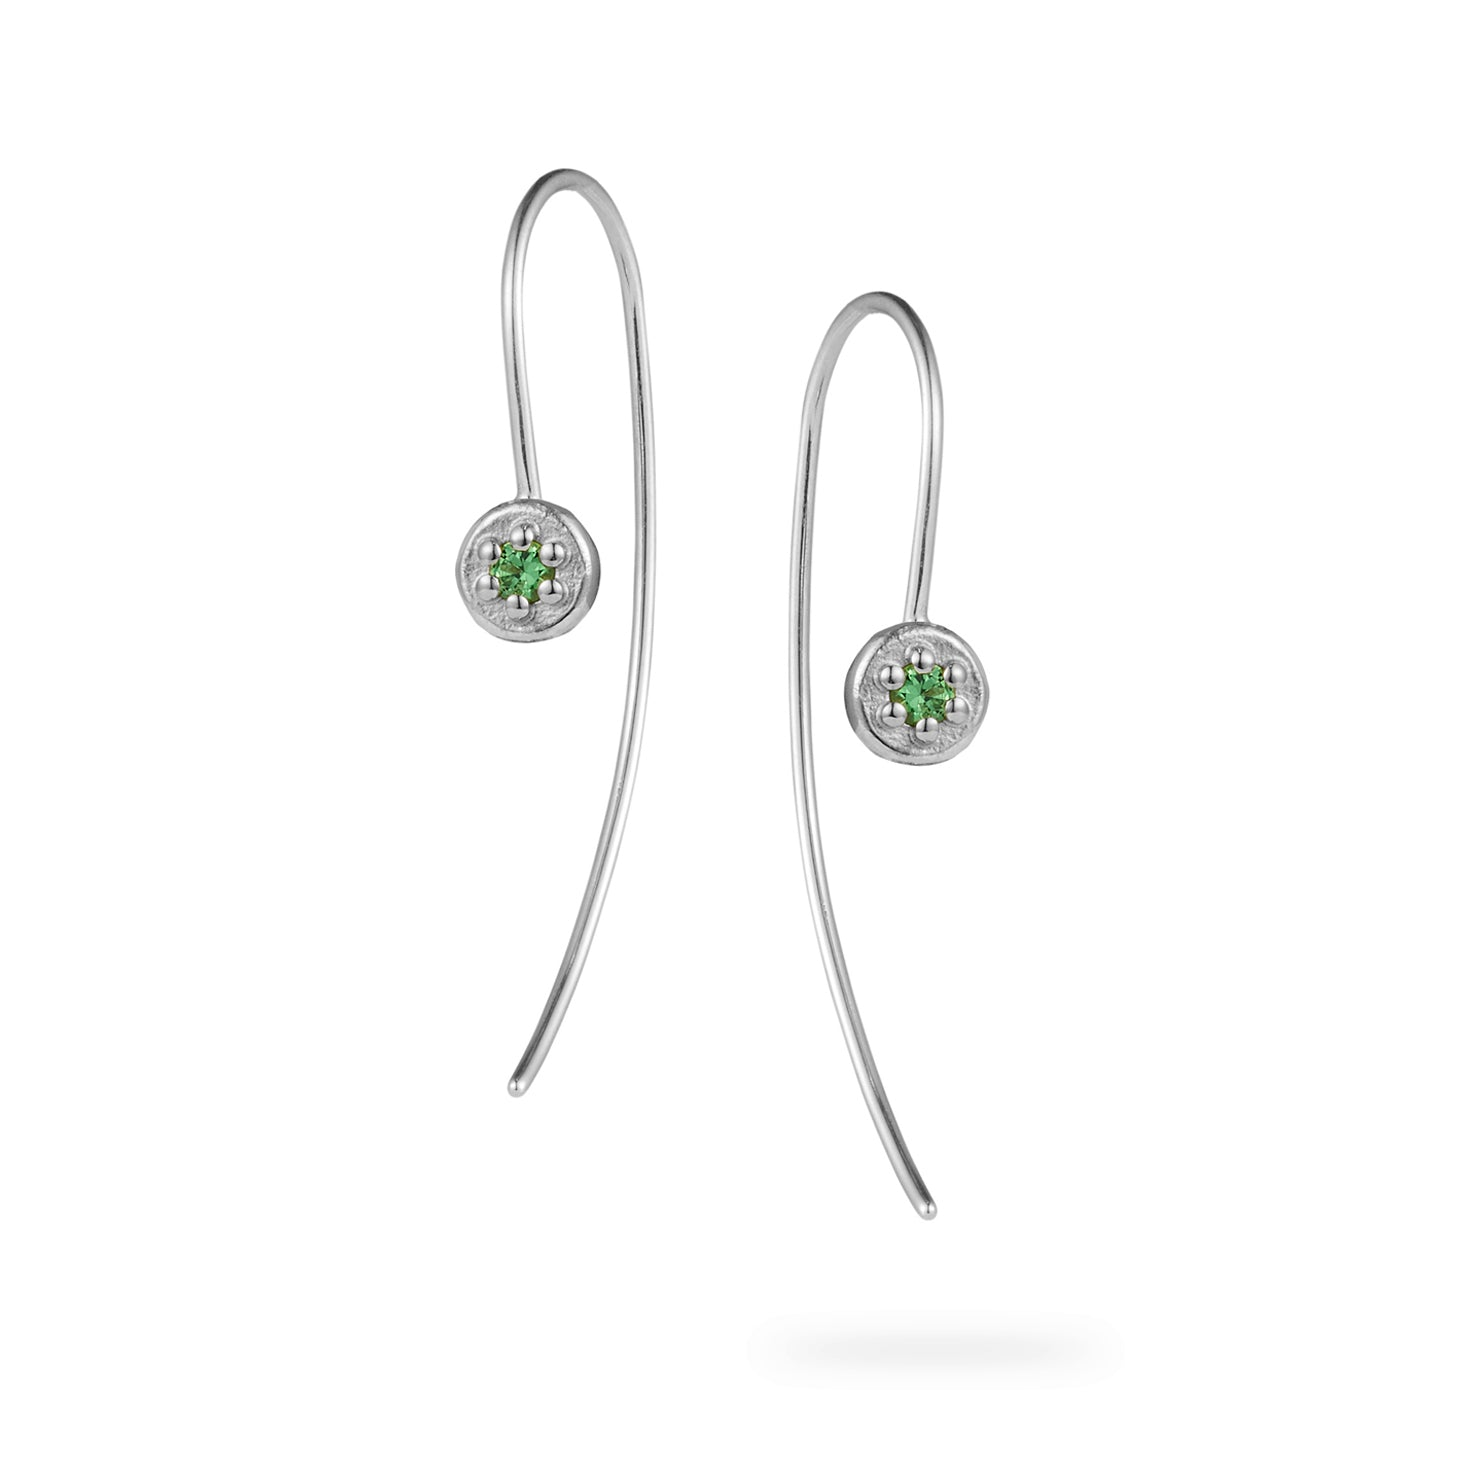 Luke Rose Jewellery stone set silver ear wires